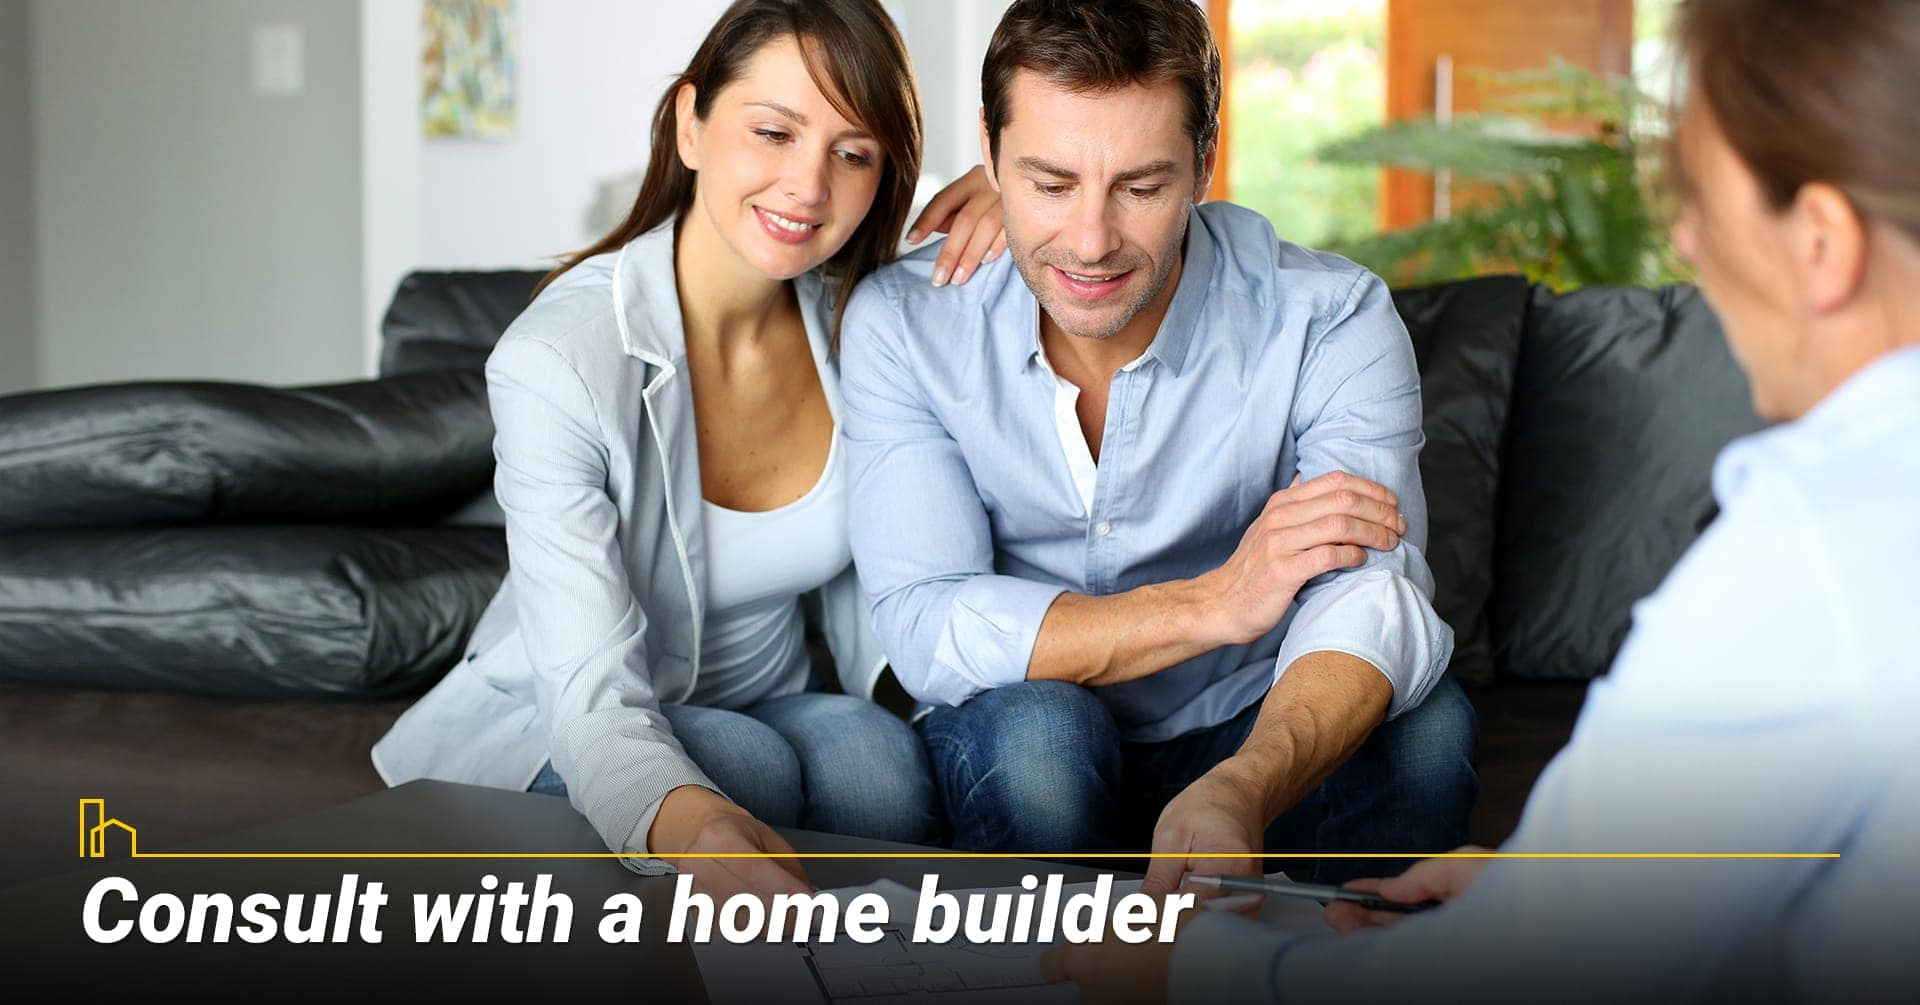 Consult with your home builder, seek advice from the builder